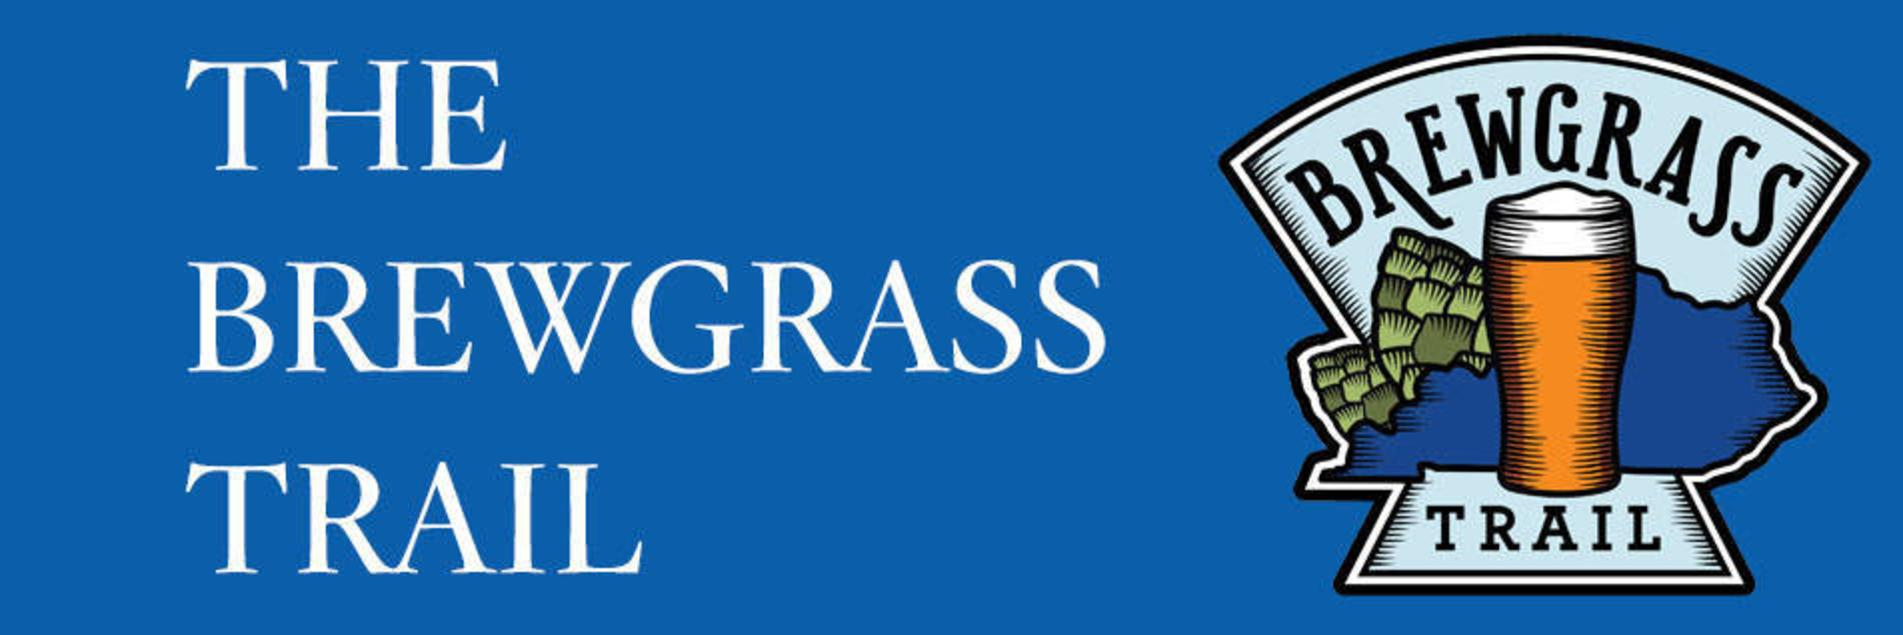 Brewgrass Trail